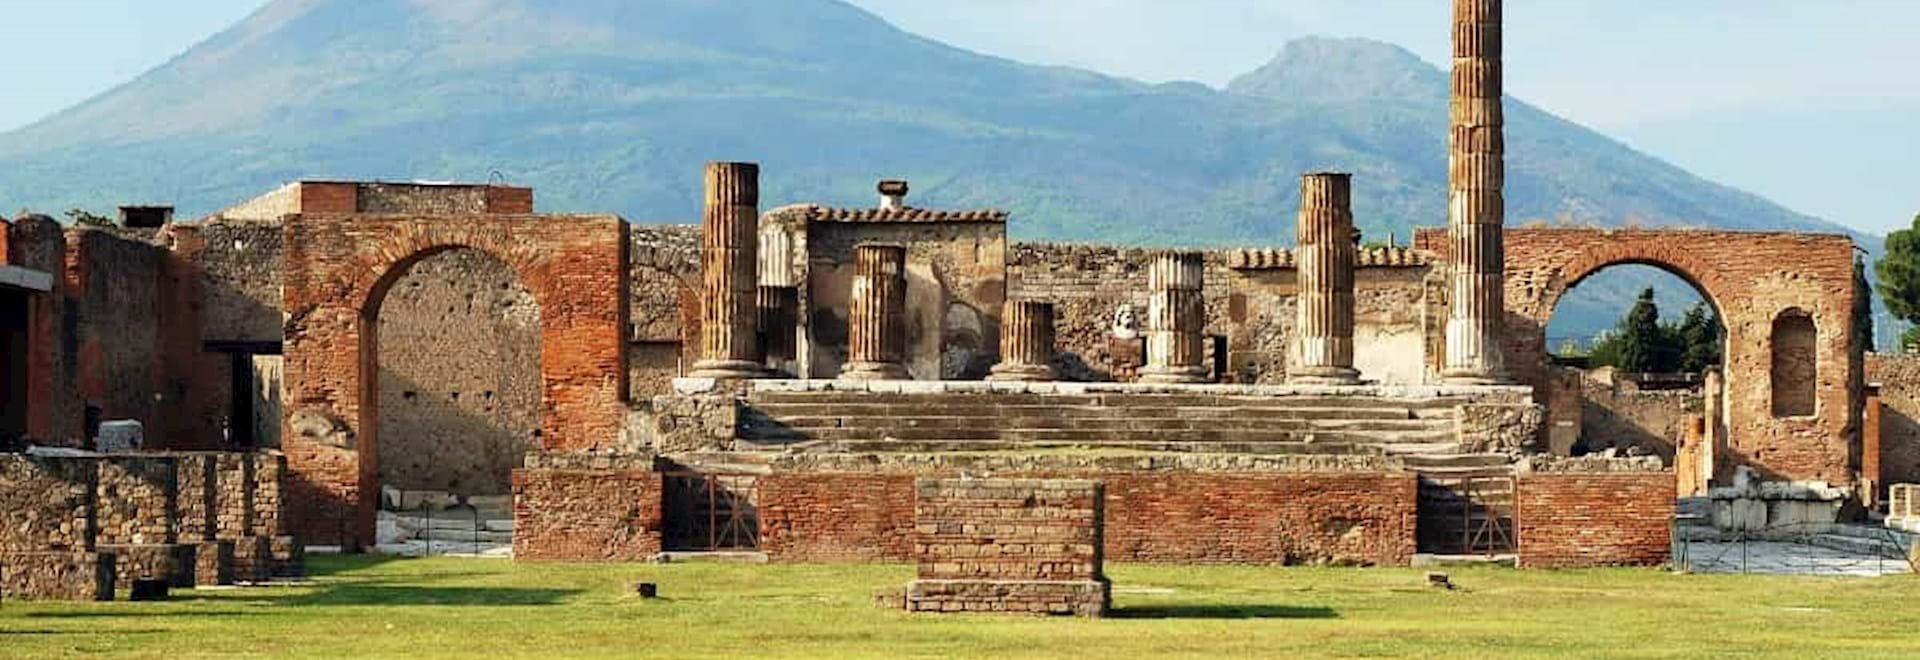 View of the Vesuvius from Pompeii